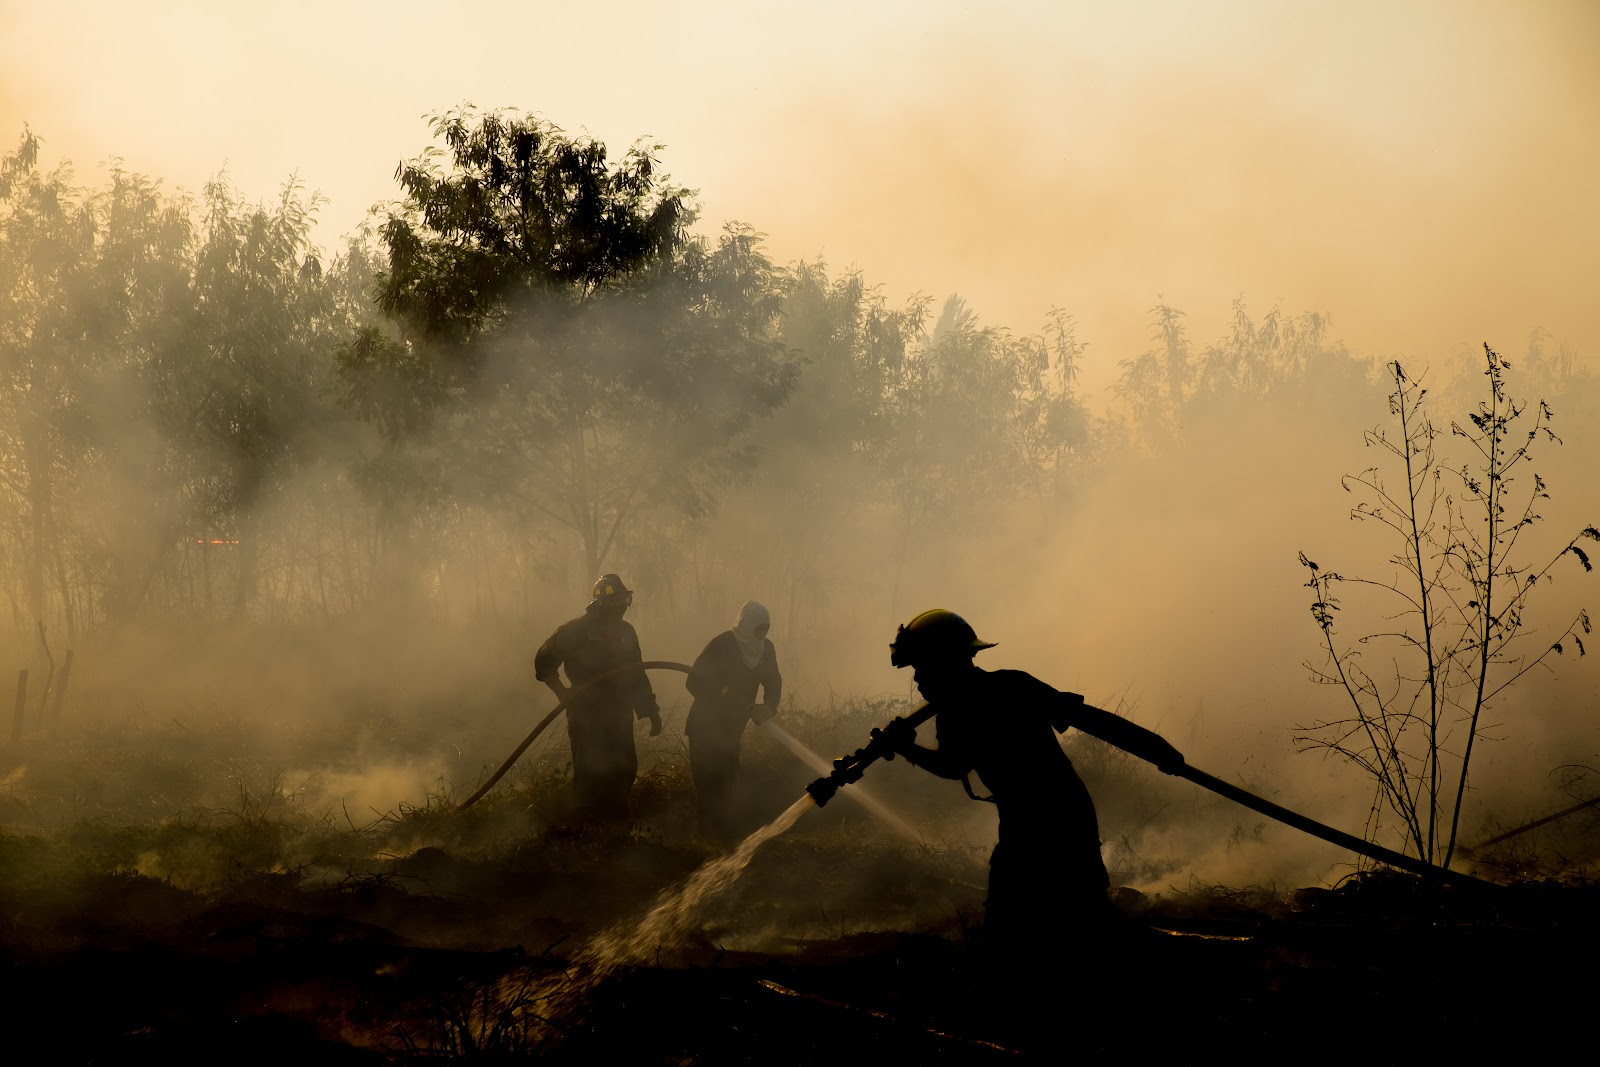 Fire fighters in a forest fire, smoke, natural disaster